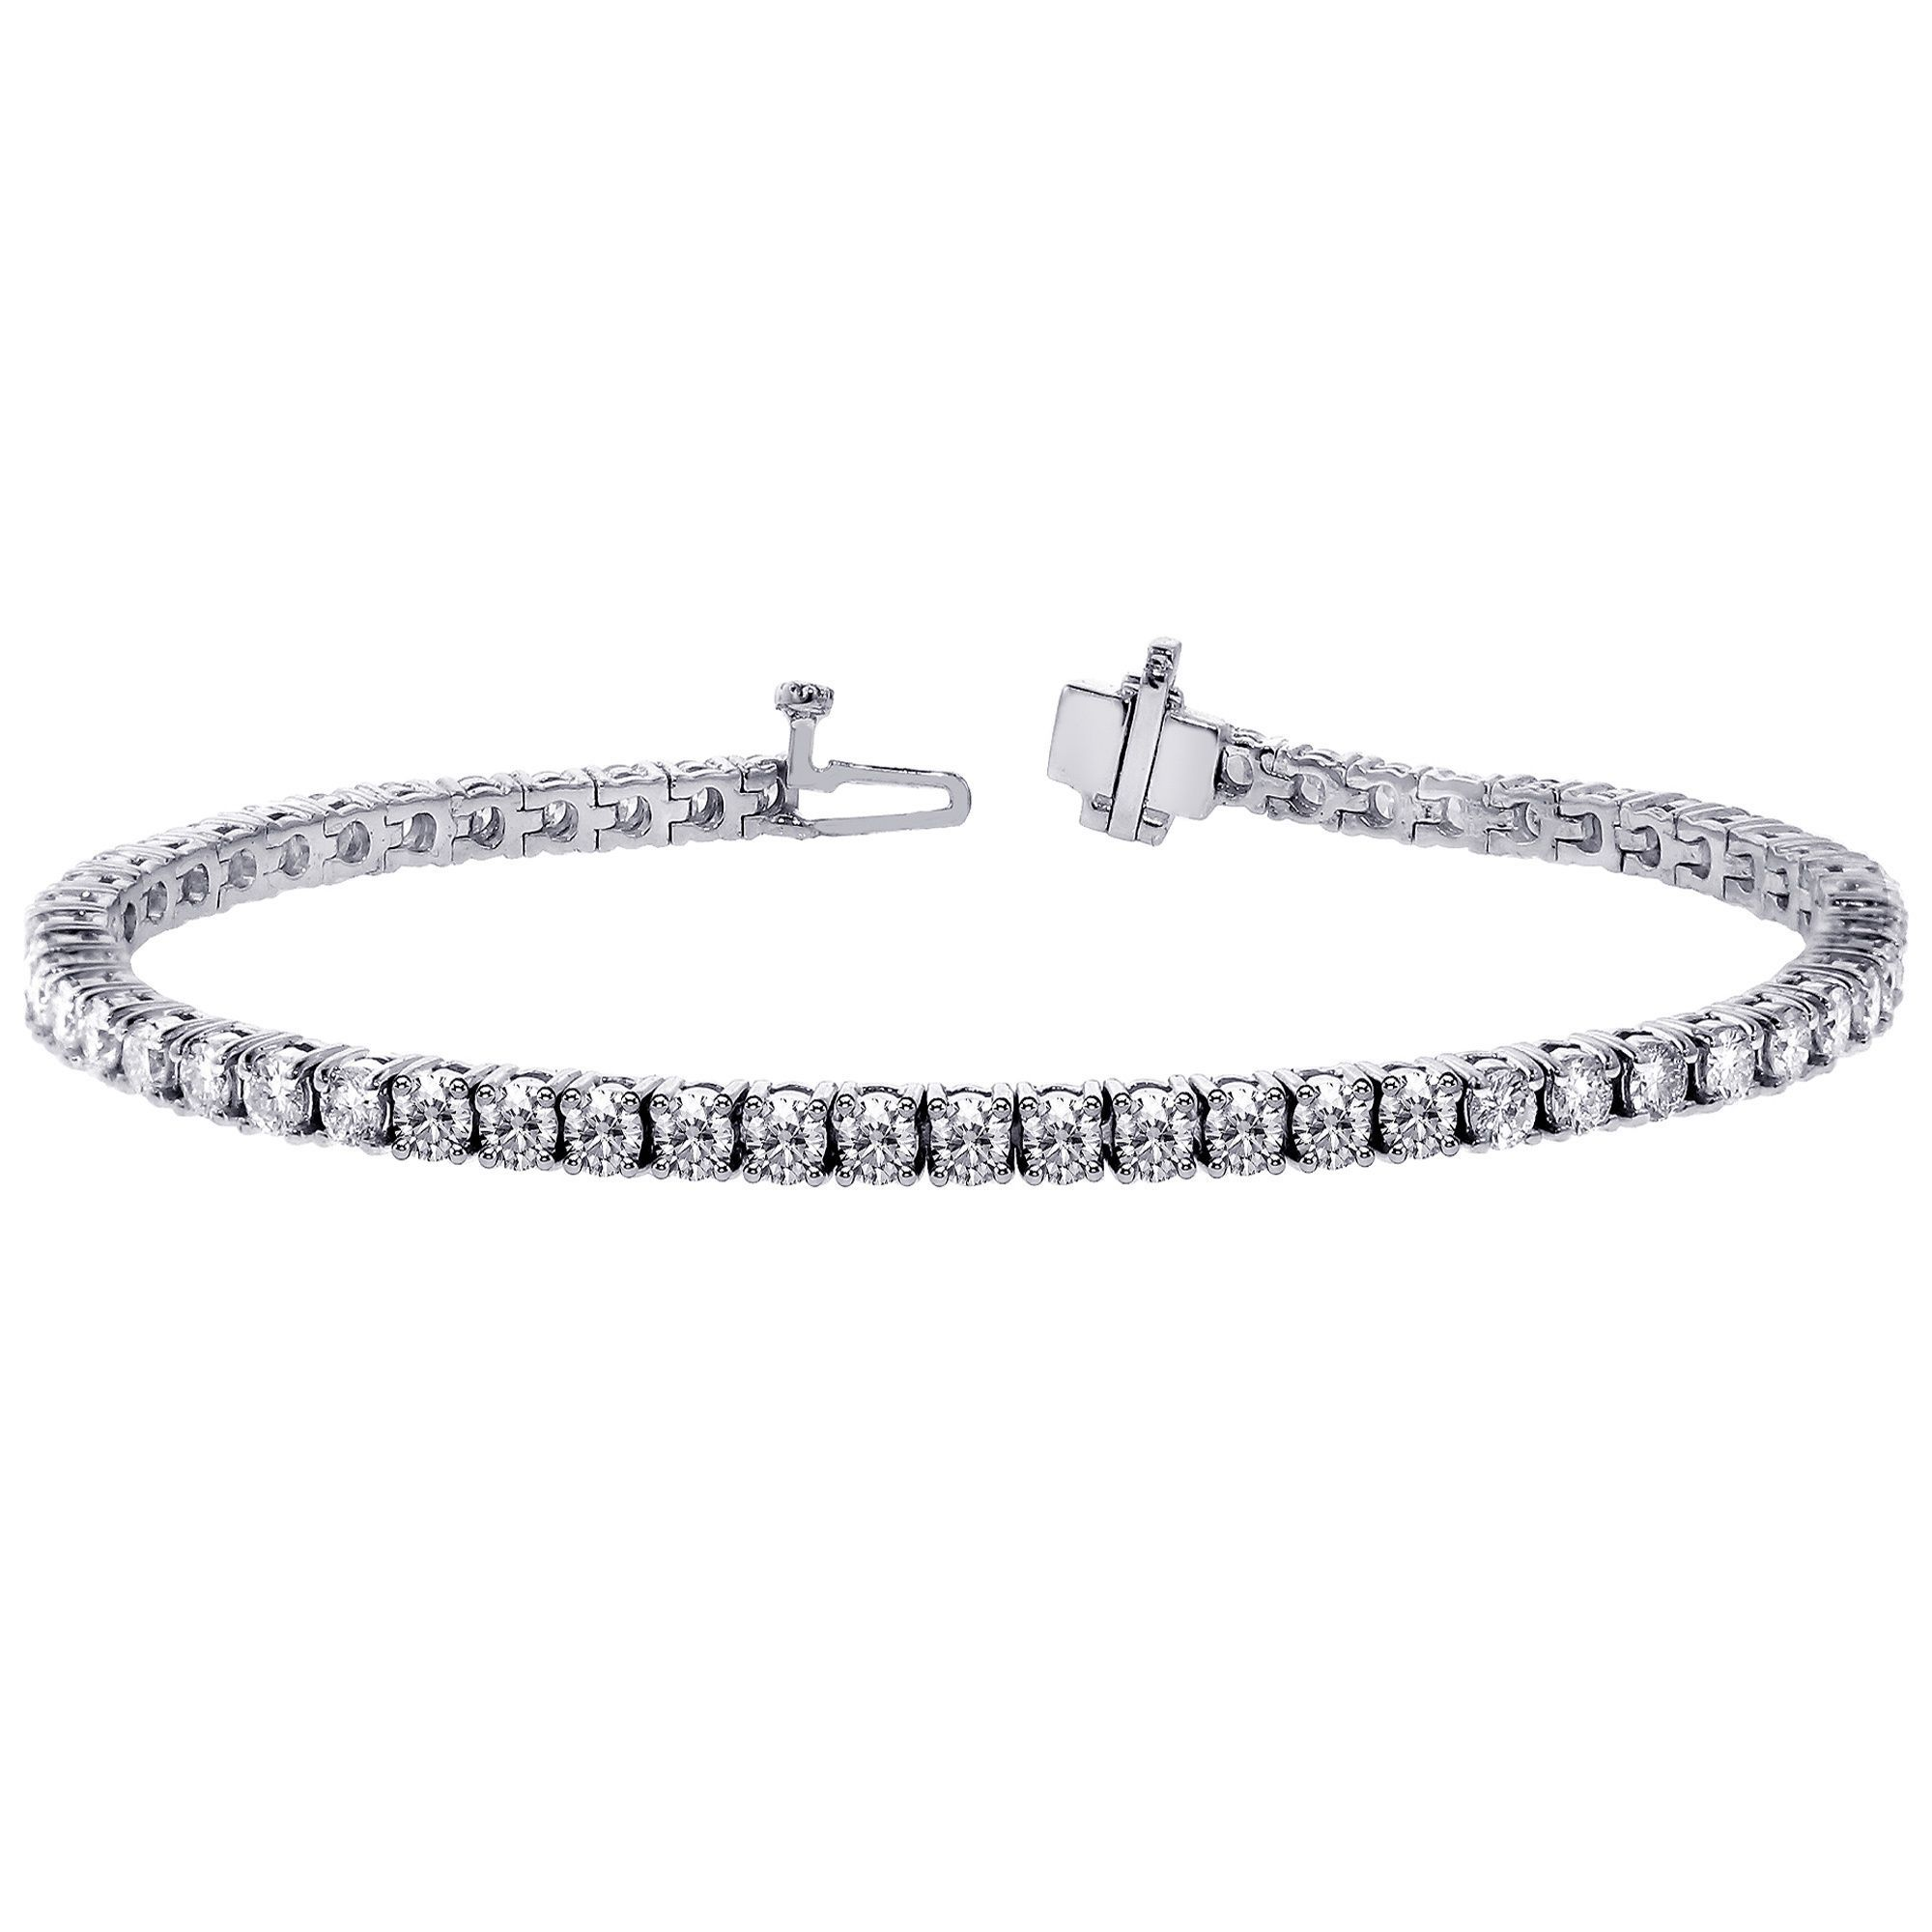 14k White Gold 7 TDW Diamond Tennis Bracelet